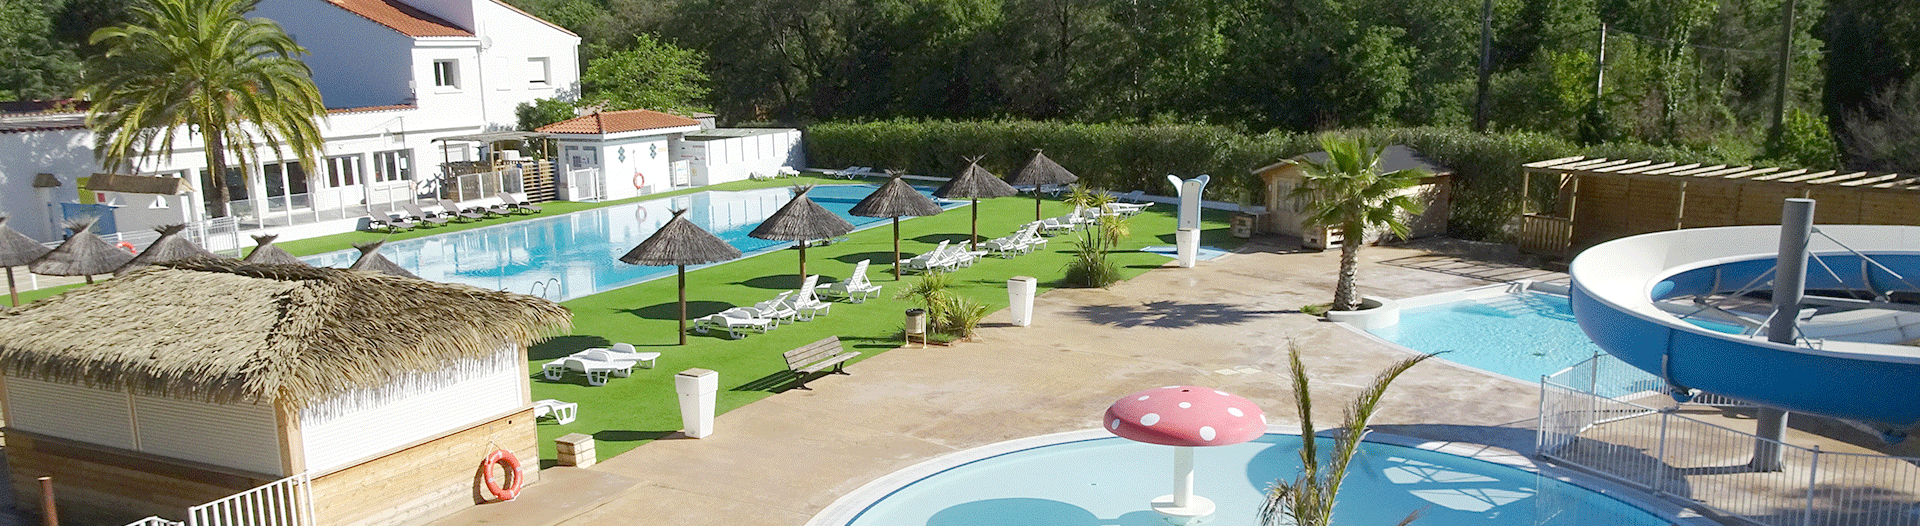 Vacance camping merlimont